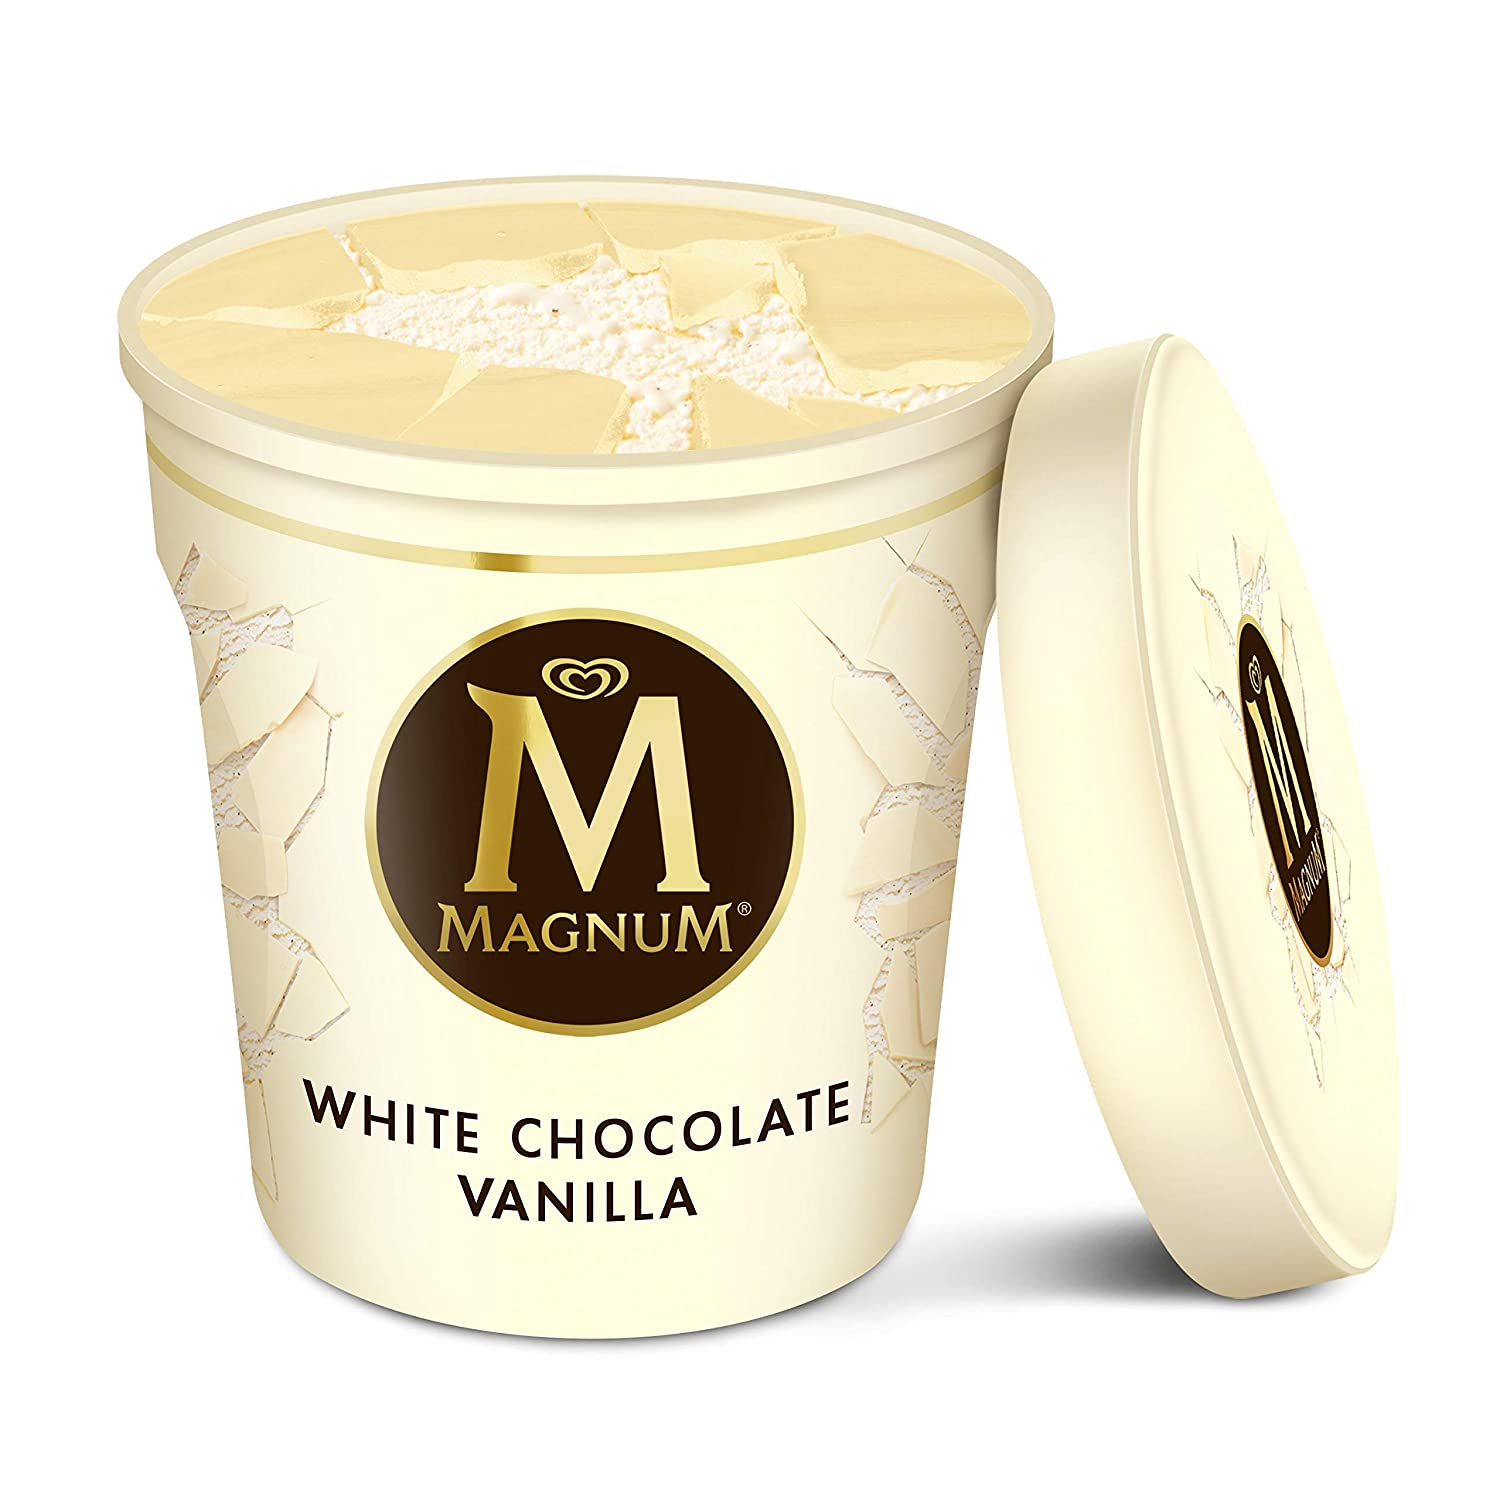 Magnum Ice Cream, White Chocolate Vanilla, 14.8 oz: Amazon.com: Grocery & Gourmet Food